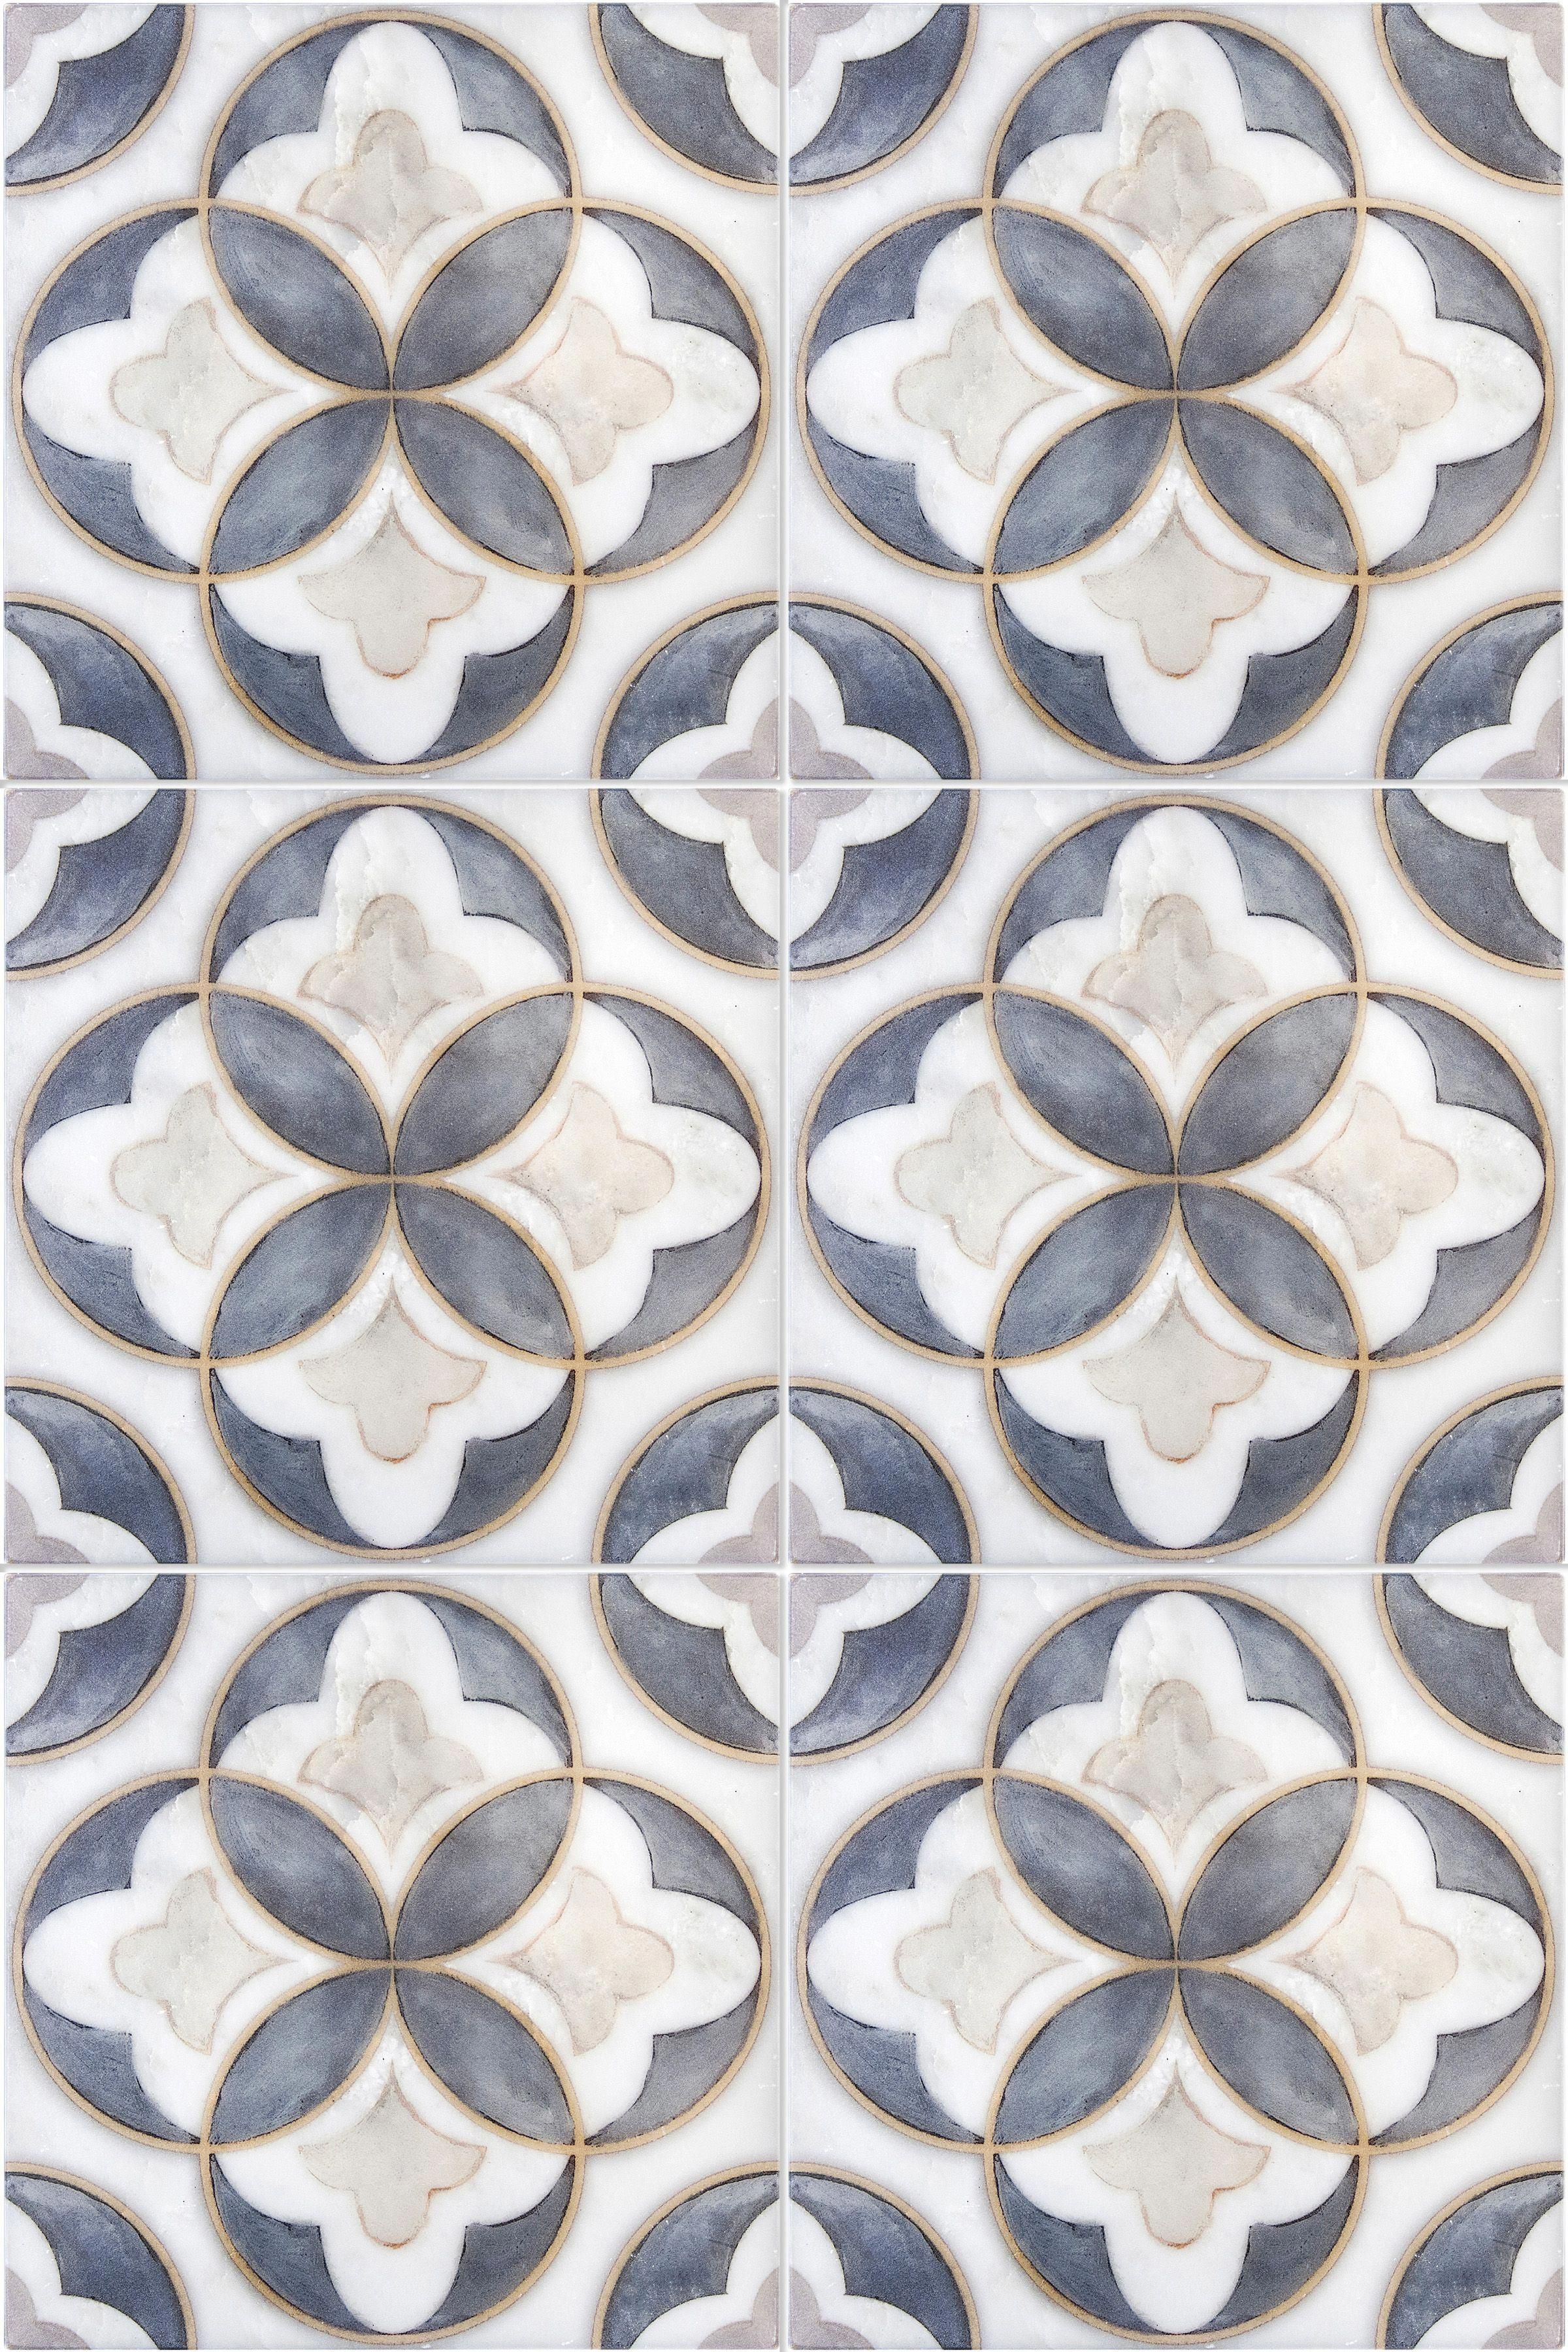 mulholland tile pattern tiles from